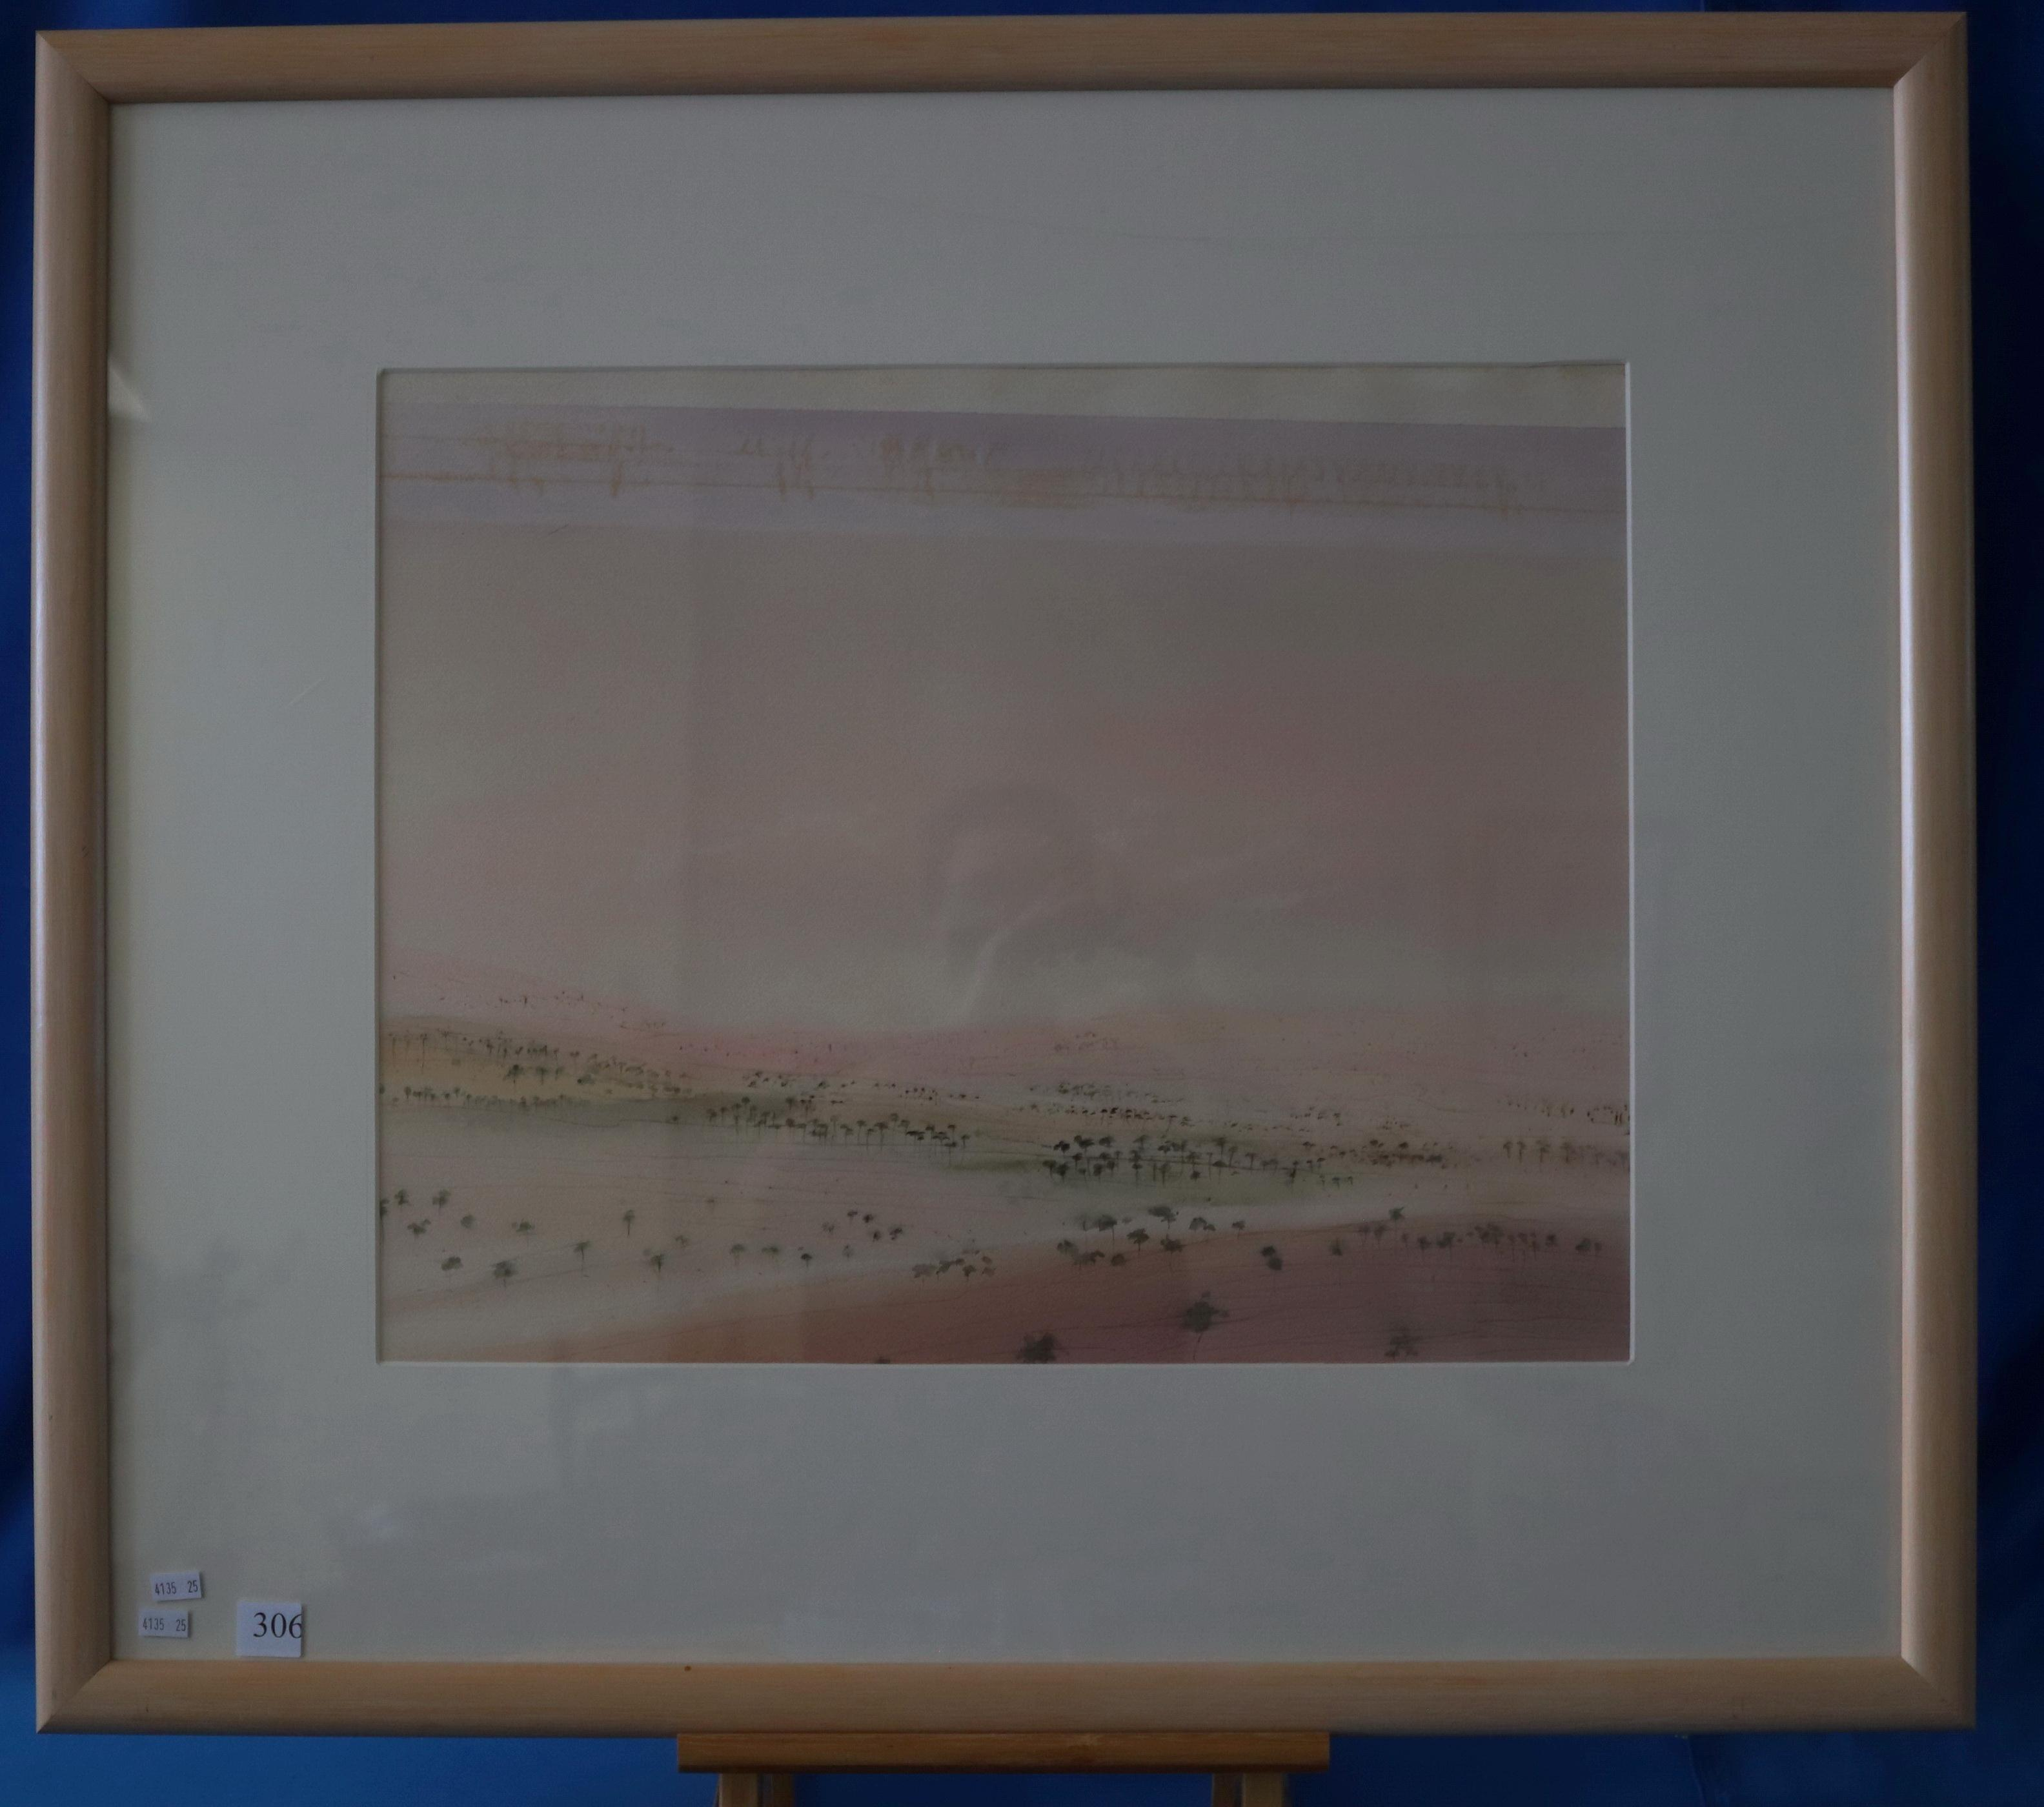 KATE SMITH DARLING DOWNS 1983 WATERCOLOUR ON PAPER 44.5 X 60